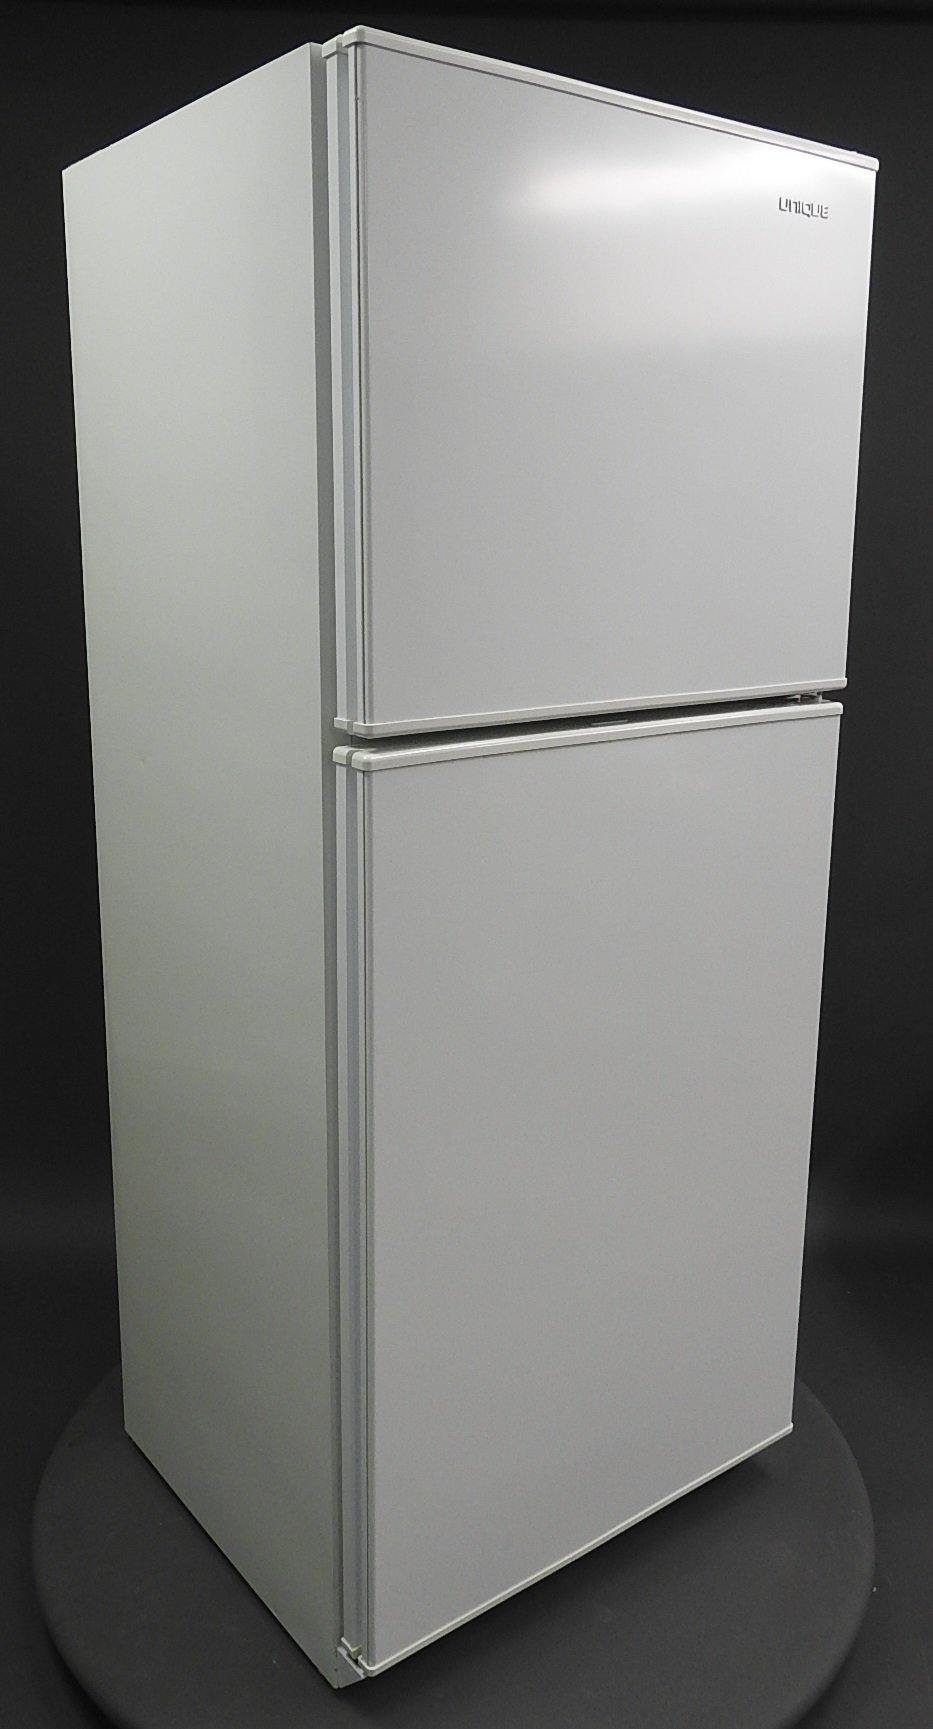 Introduction To The Biggest Solar Refrigerator In North America - Ben's Discount Supply